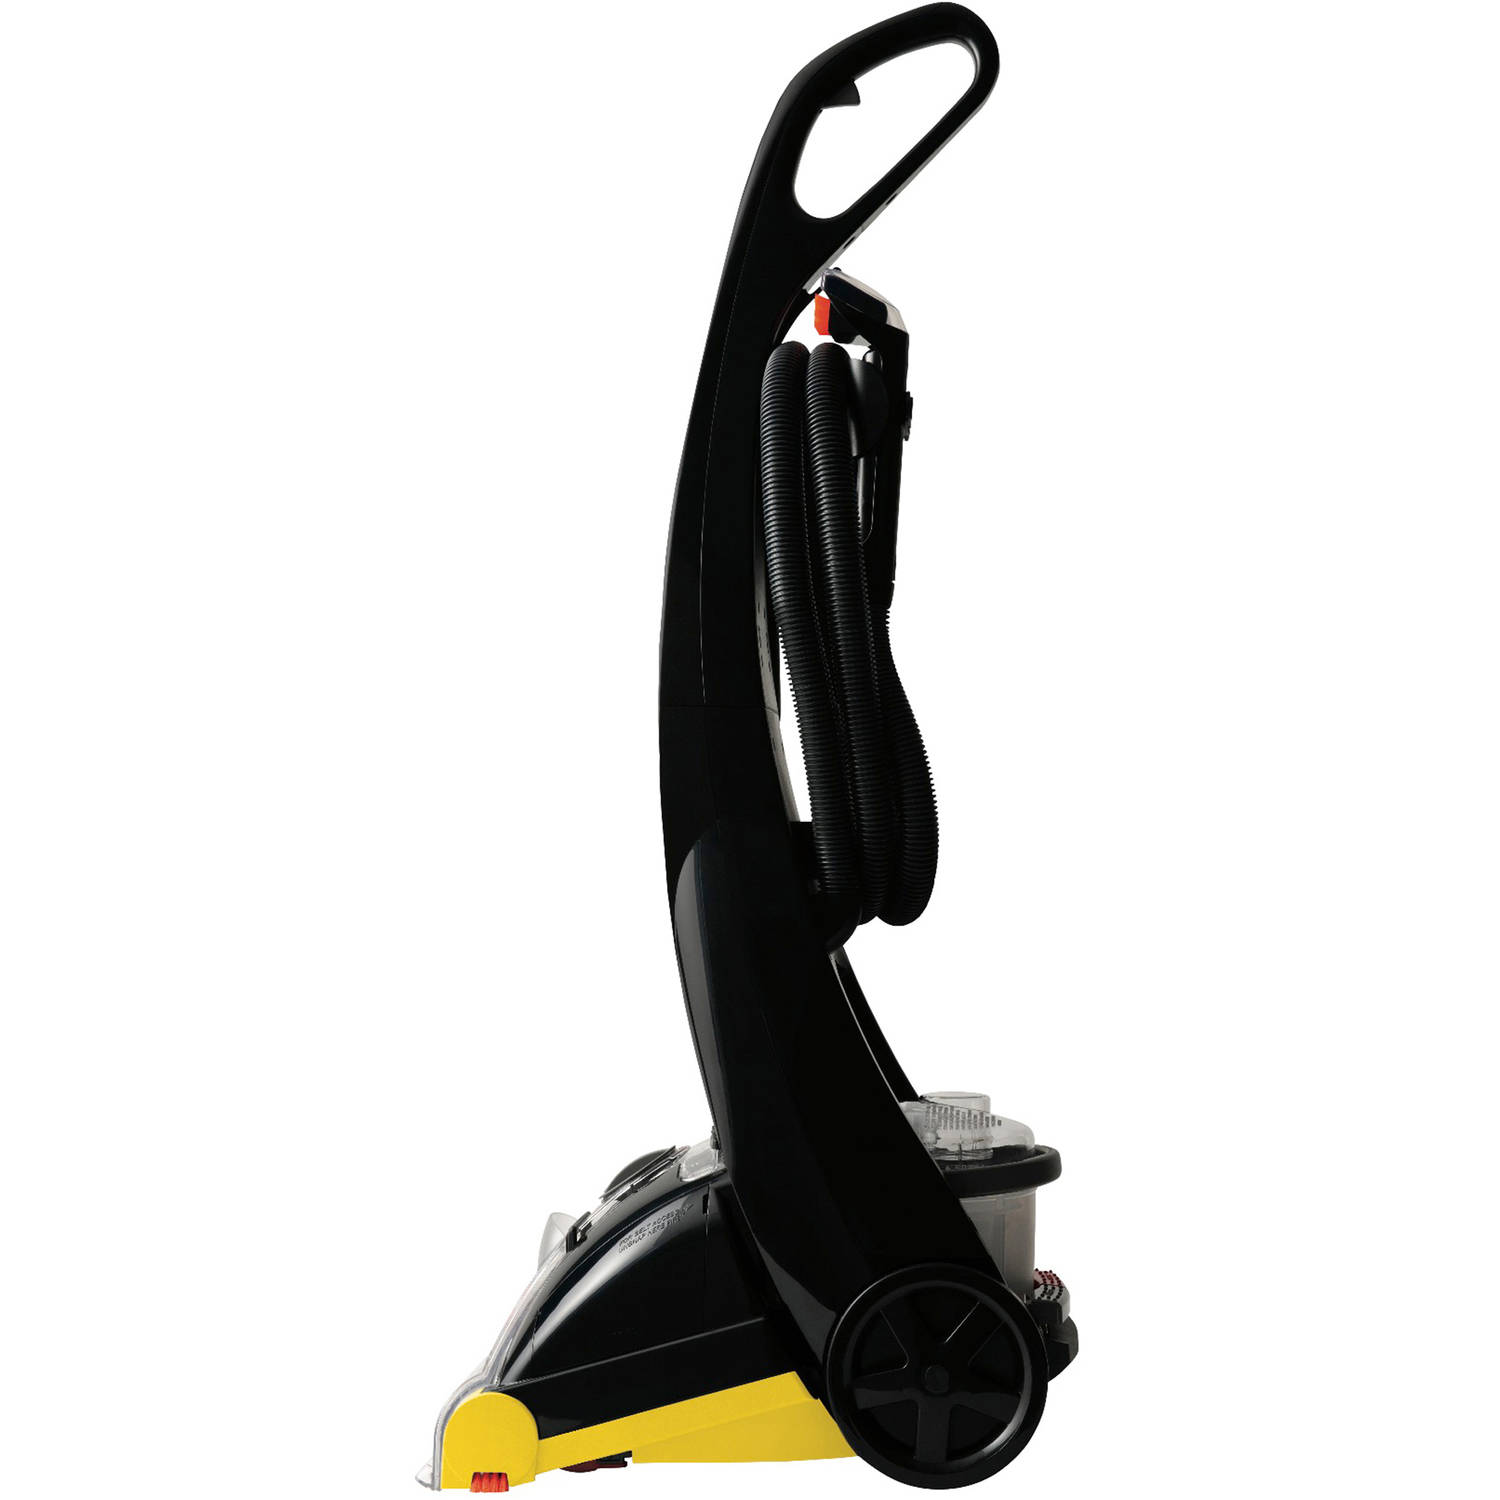 bissell proheat advanced fullsize carpet cleaner with heatwave technology image 3 of